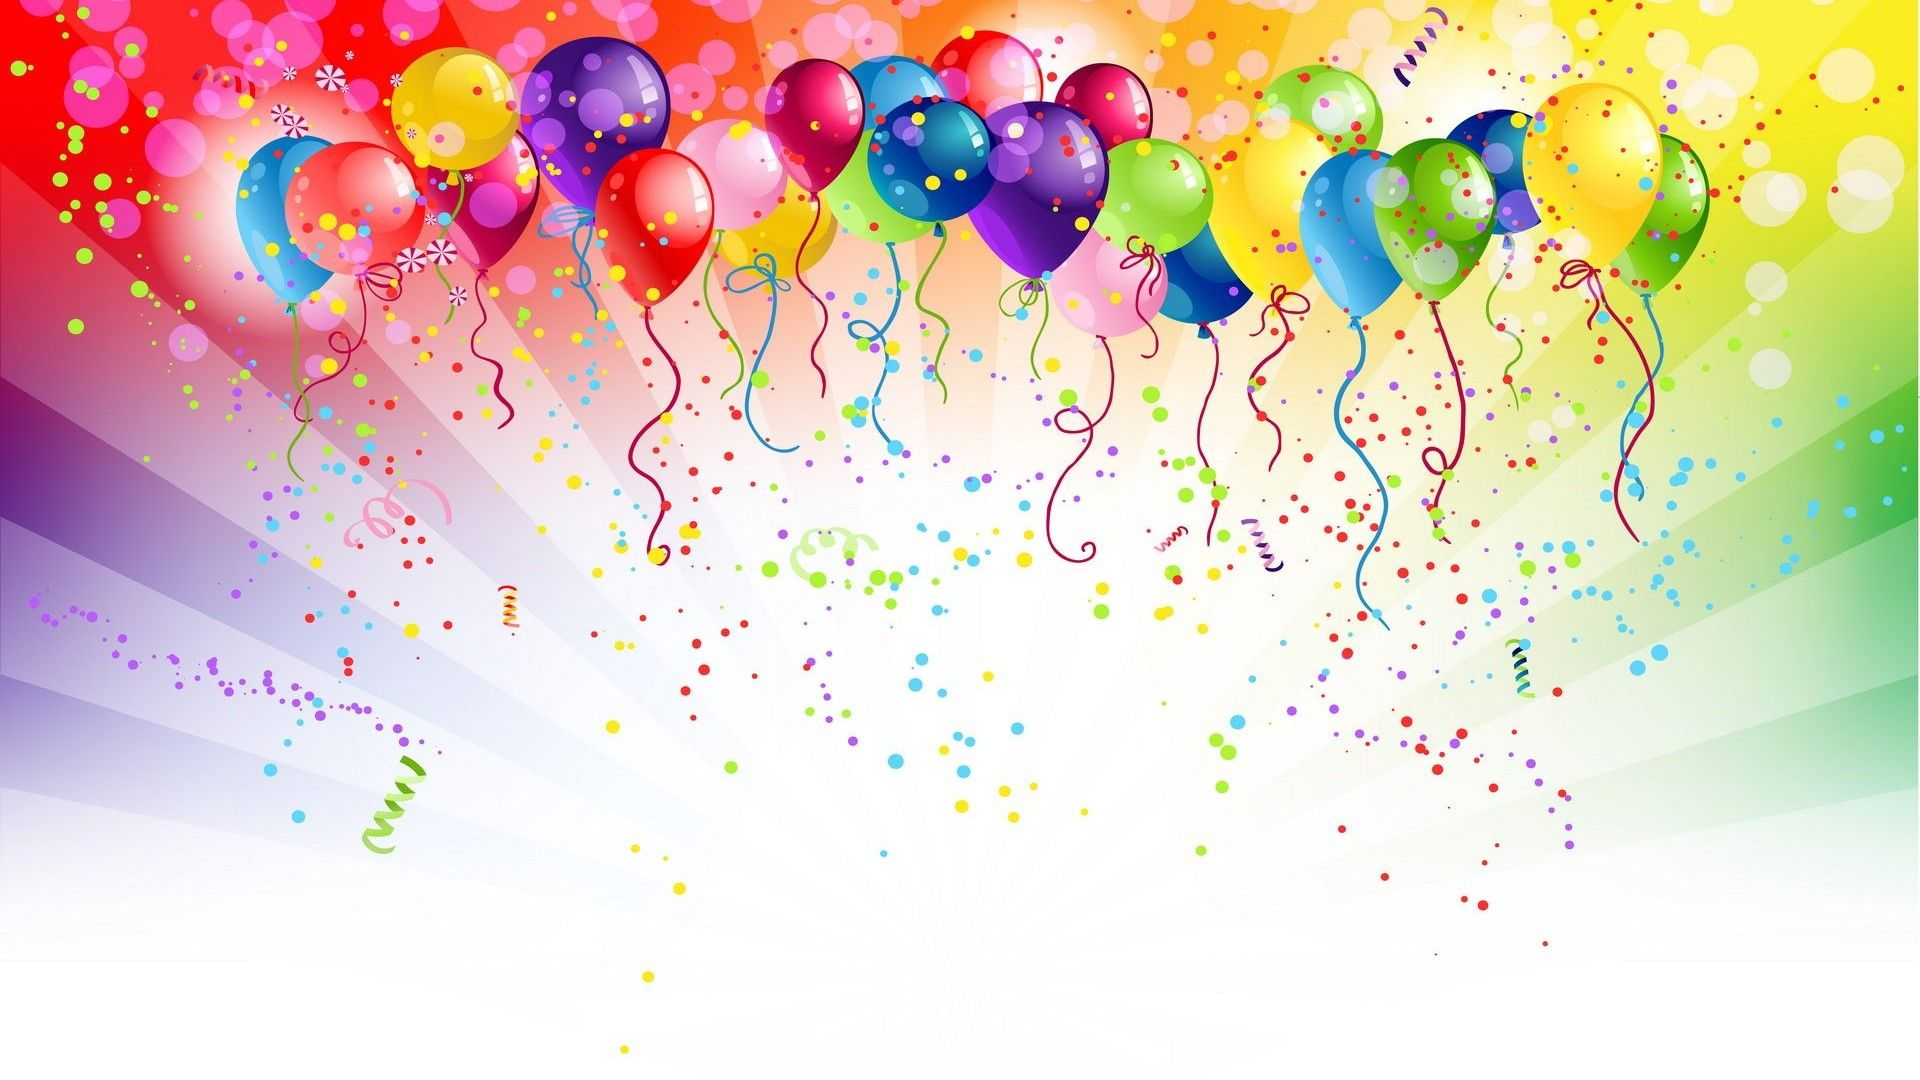 Design Balloons Online India